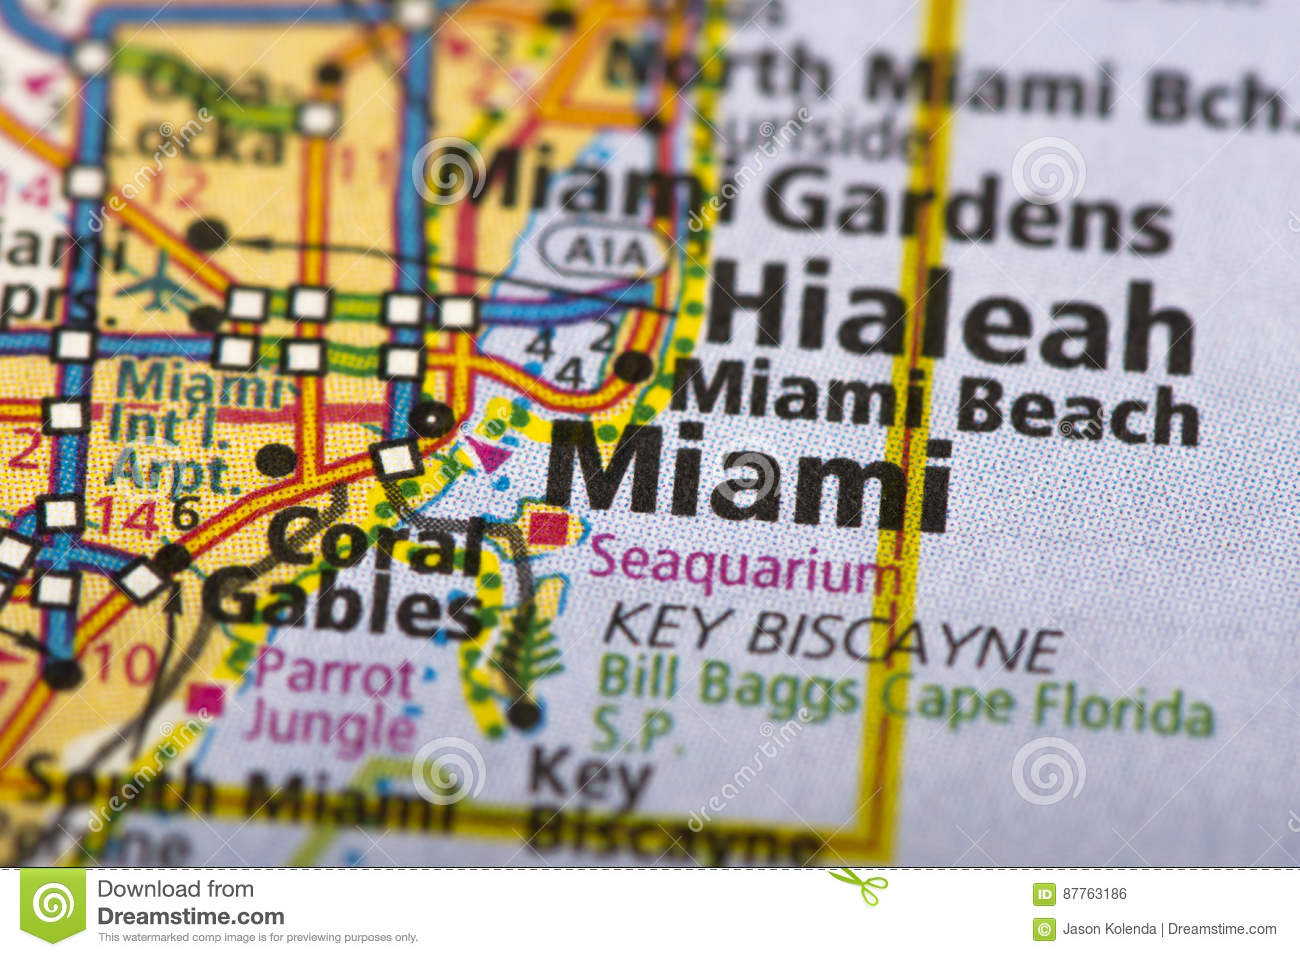 miami, florida no mapa foto de stock. imagem de papel - 87763186